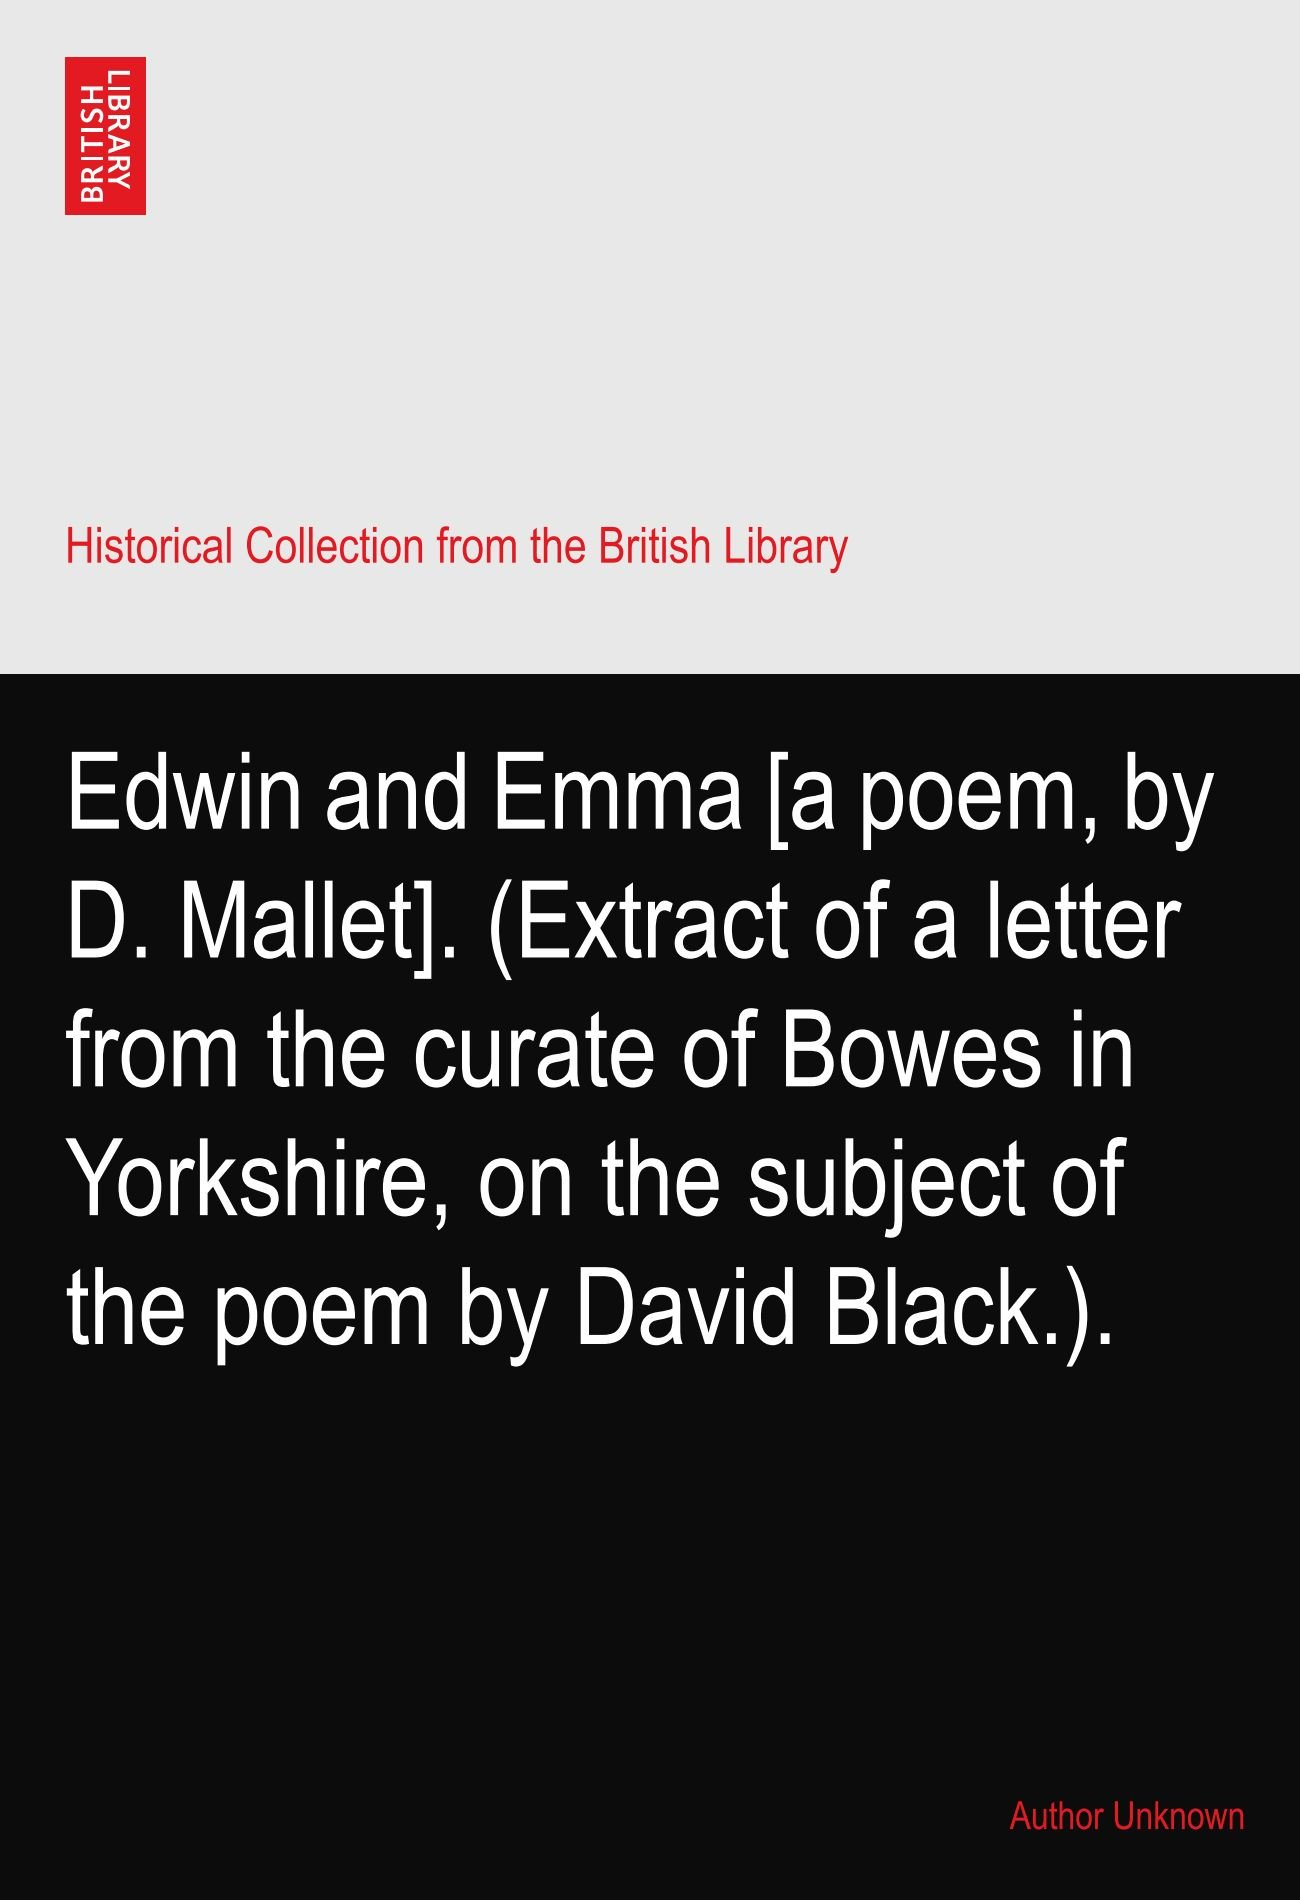 Edwin and Emma [a poem, by D. Mallet]. (Extract of a letter from the curate of Bowes in Yorkshire, on the subject of the poem by David Black.). PDF